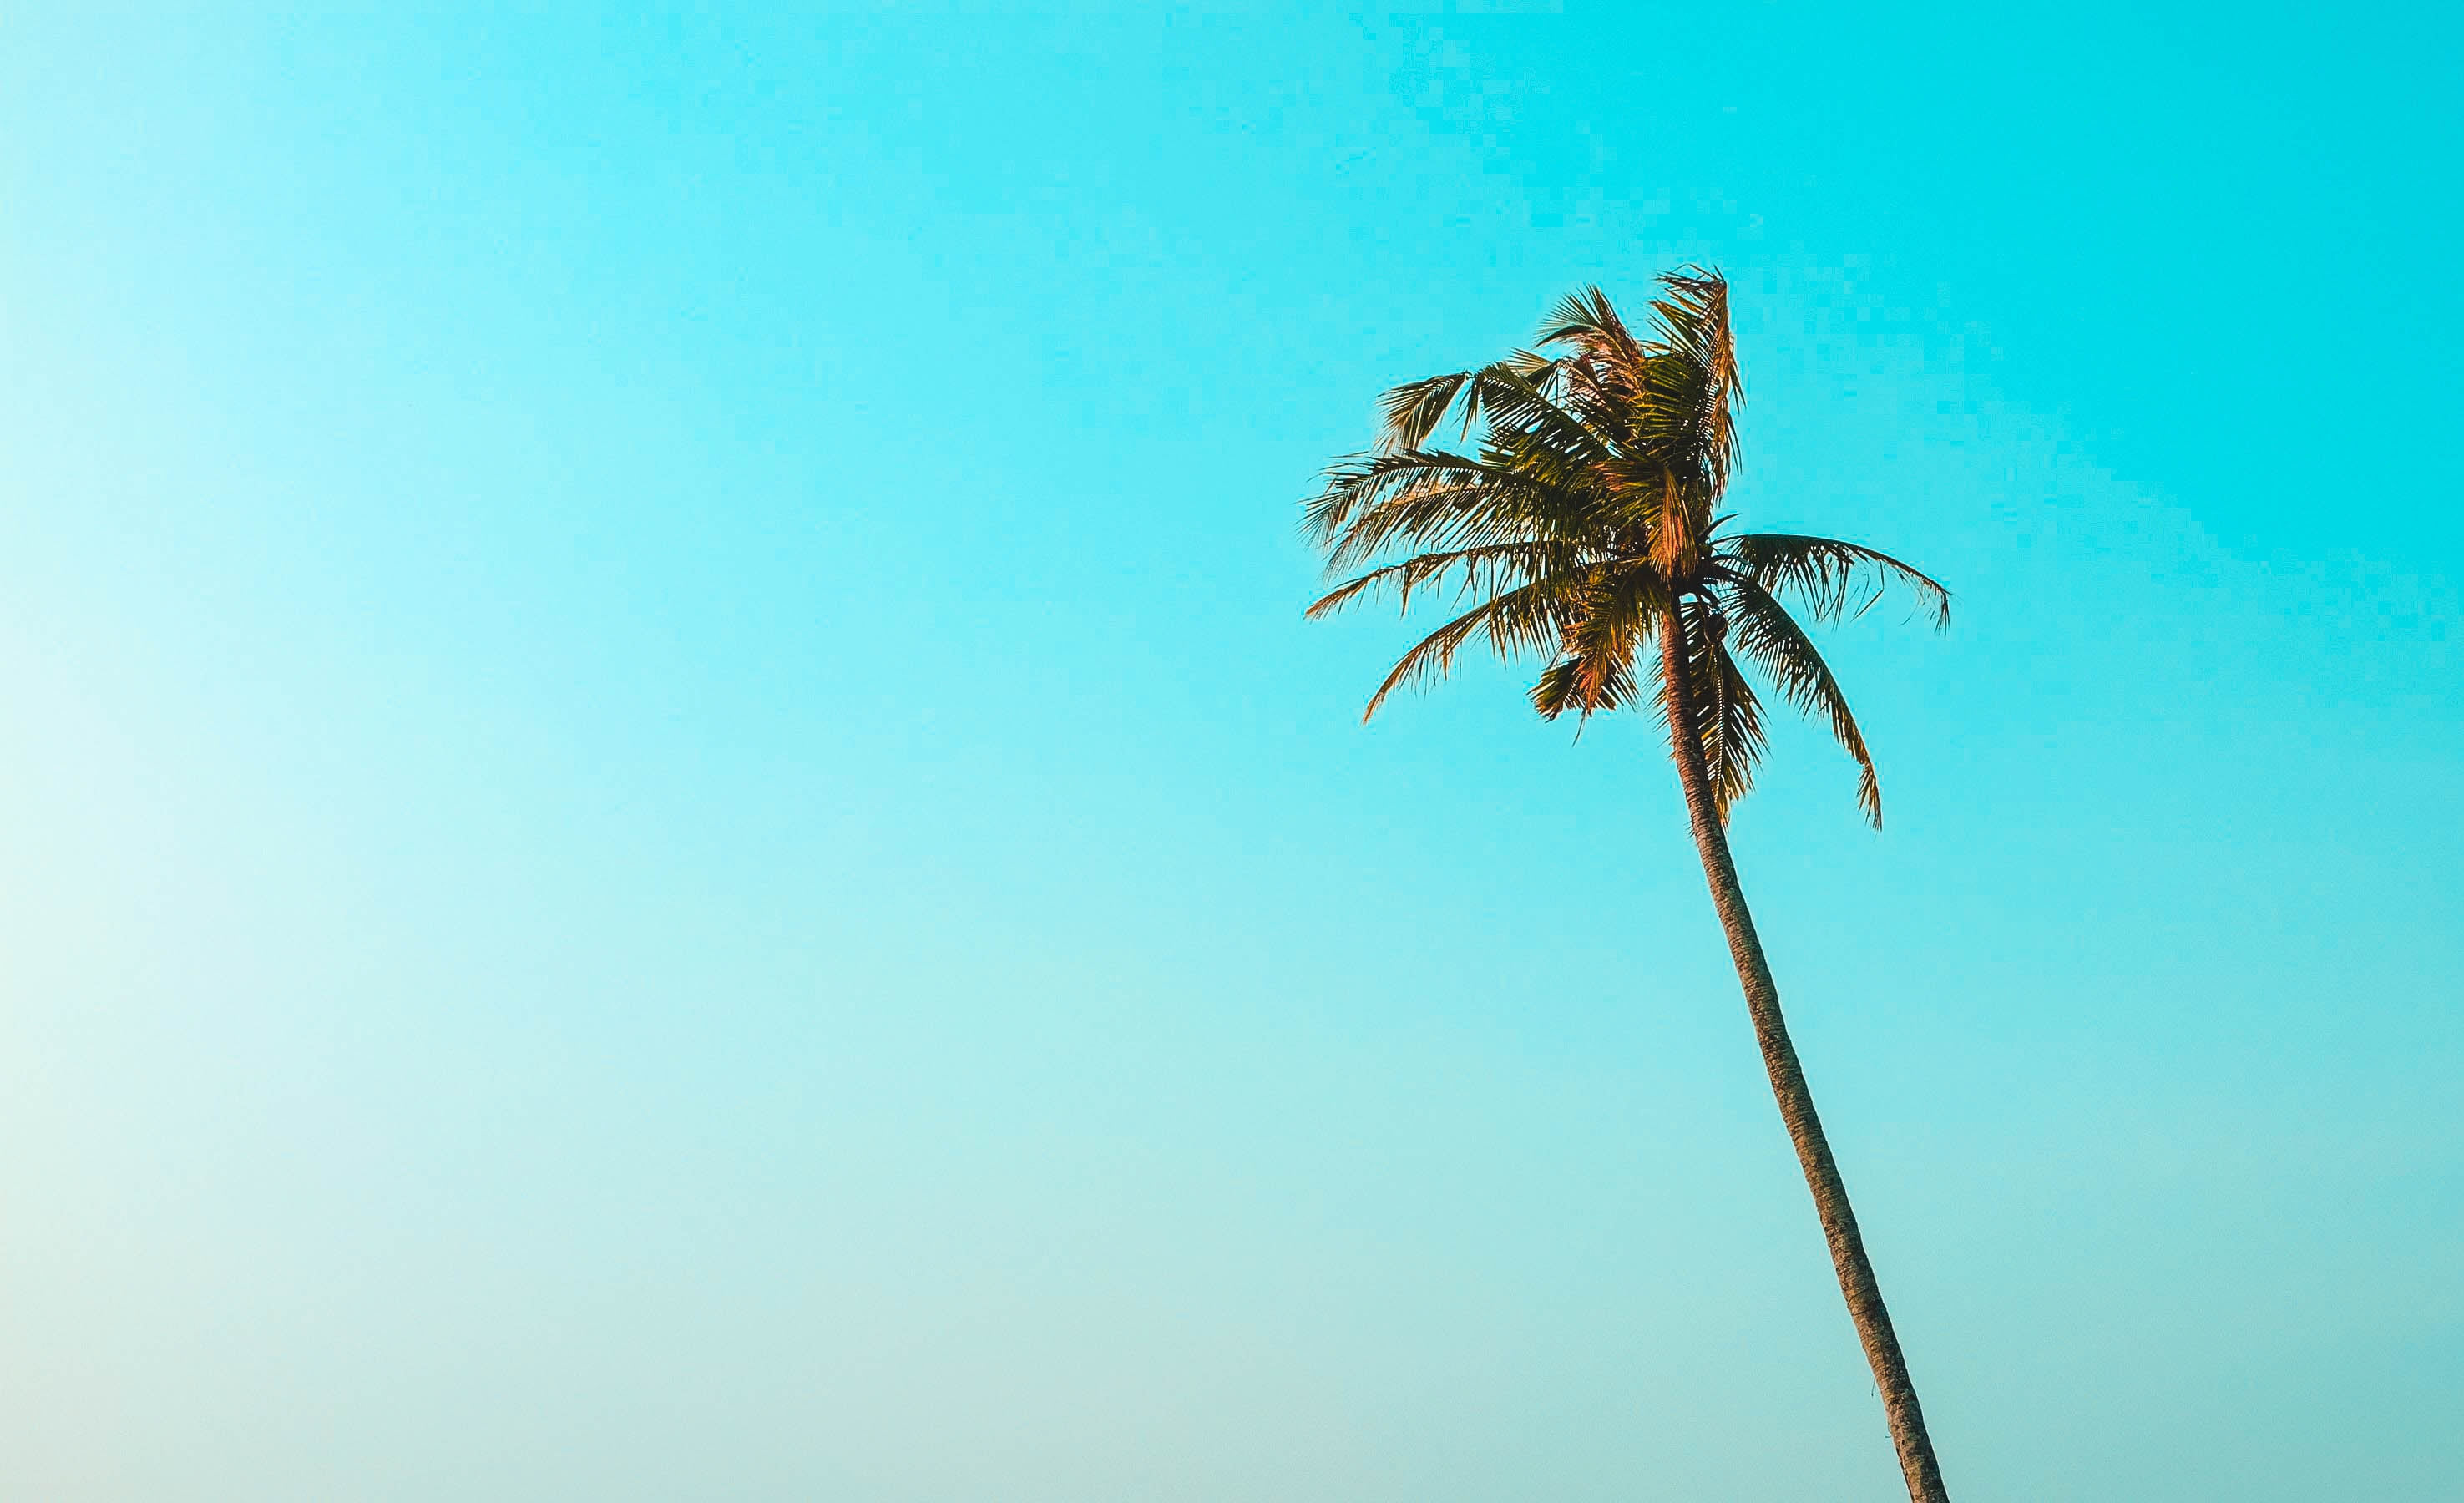 green leafed coconut tree under teal sky